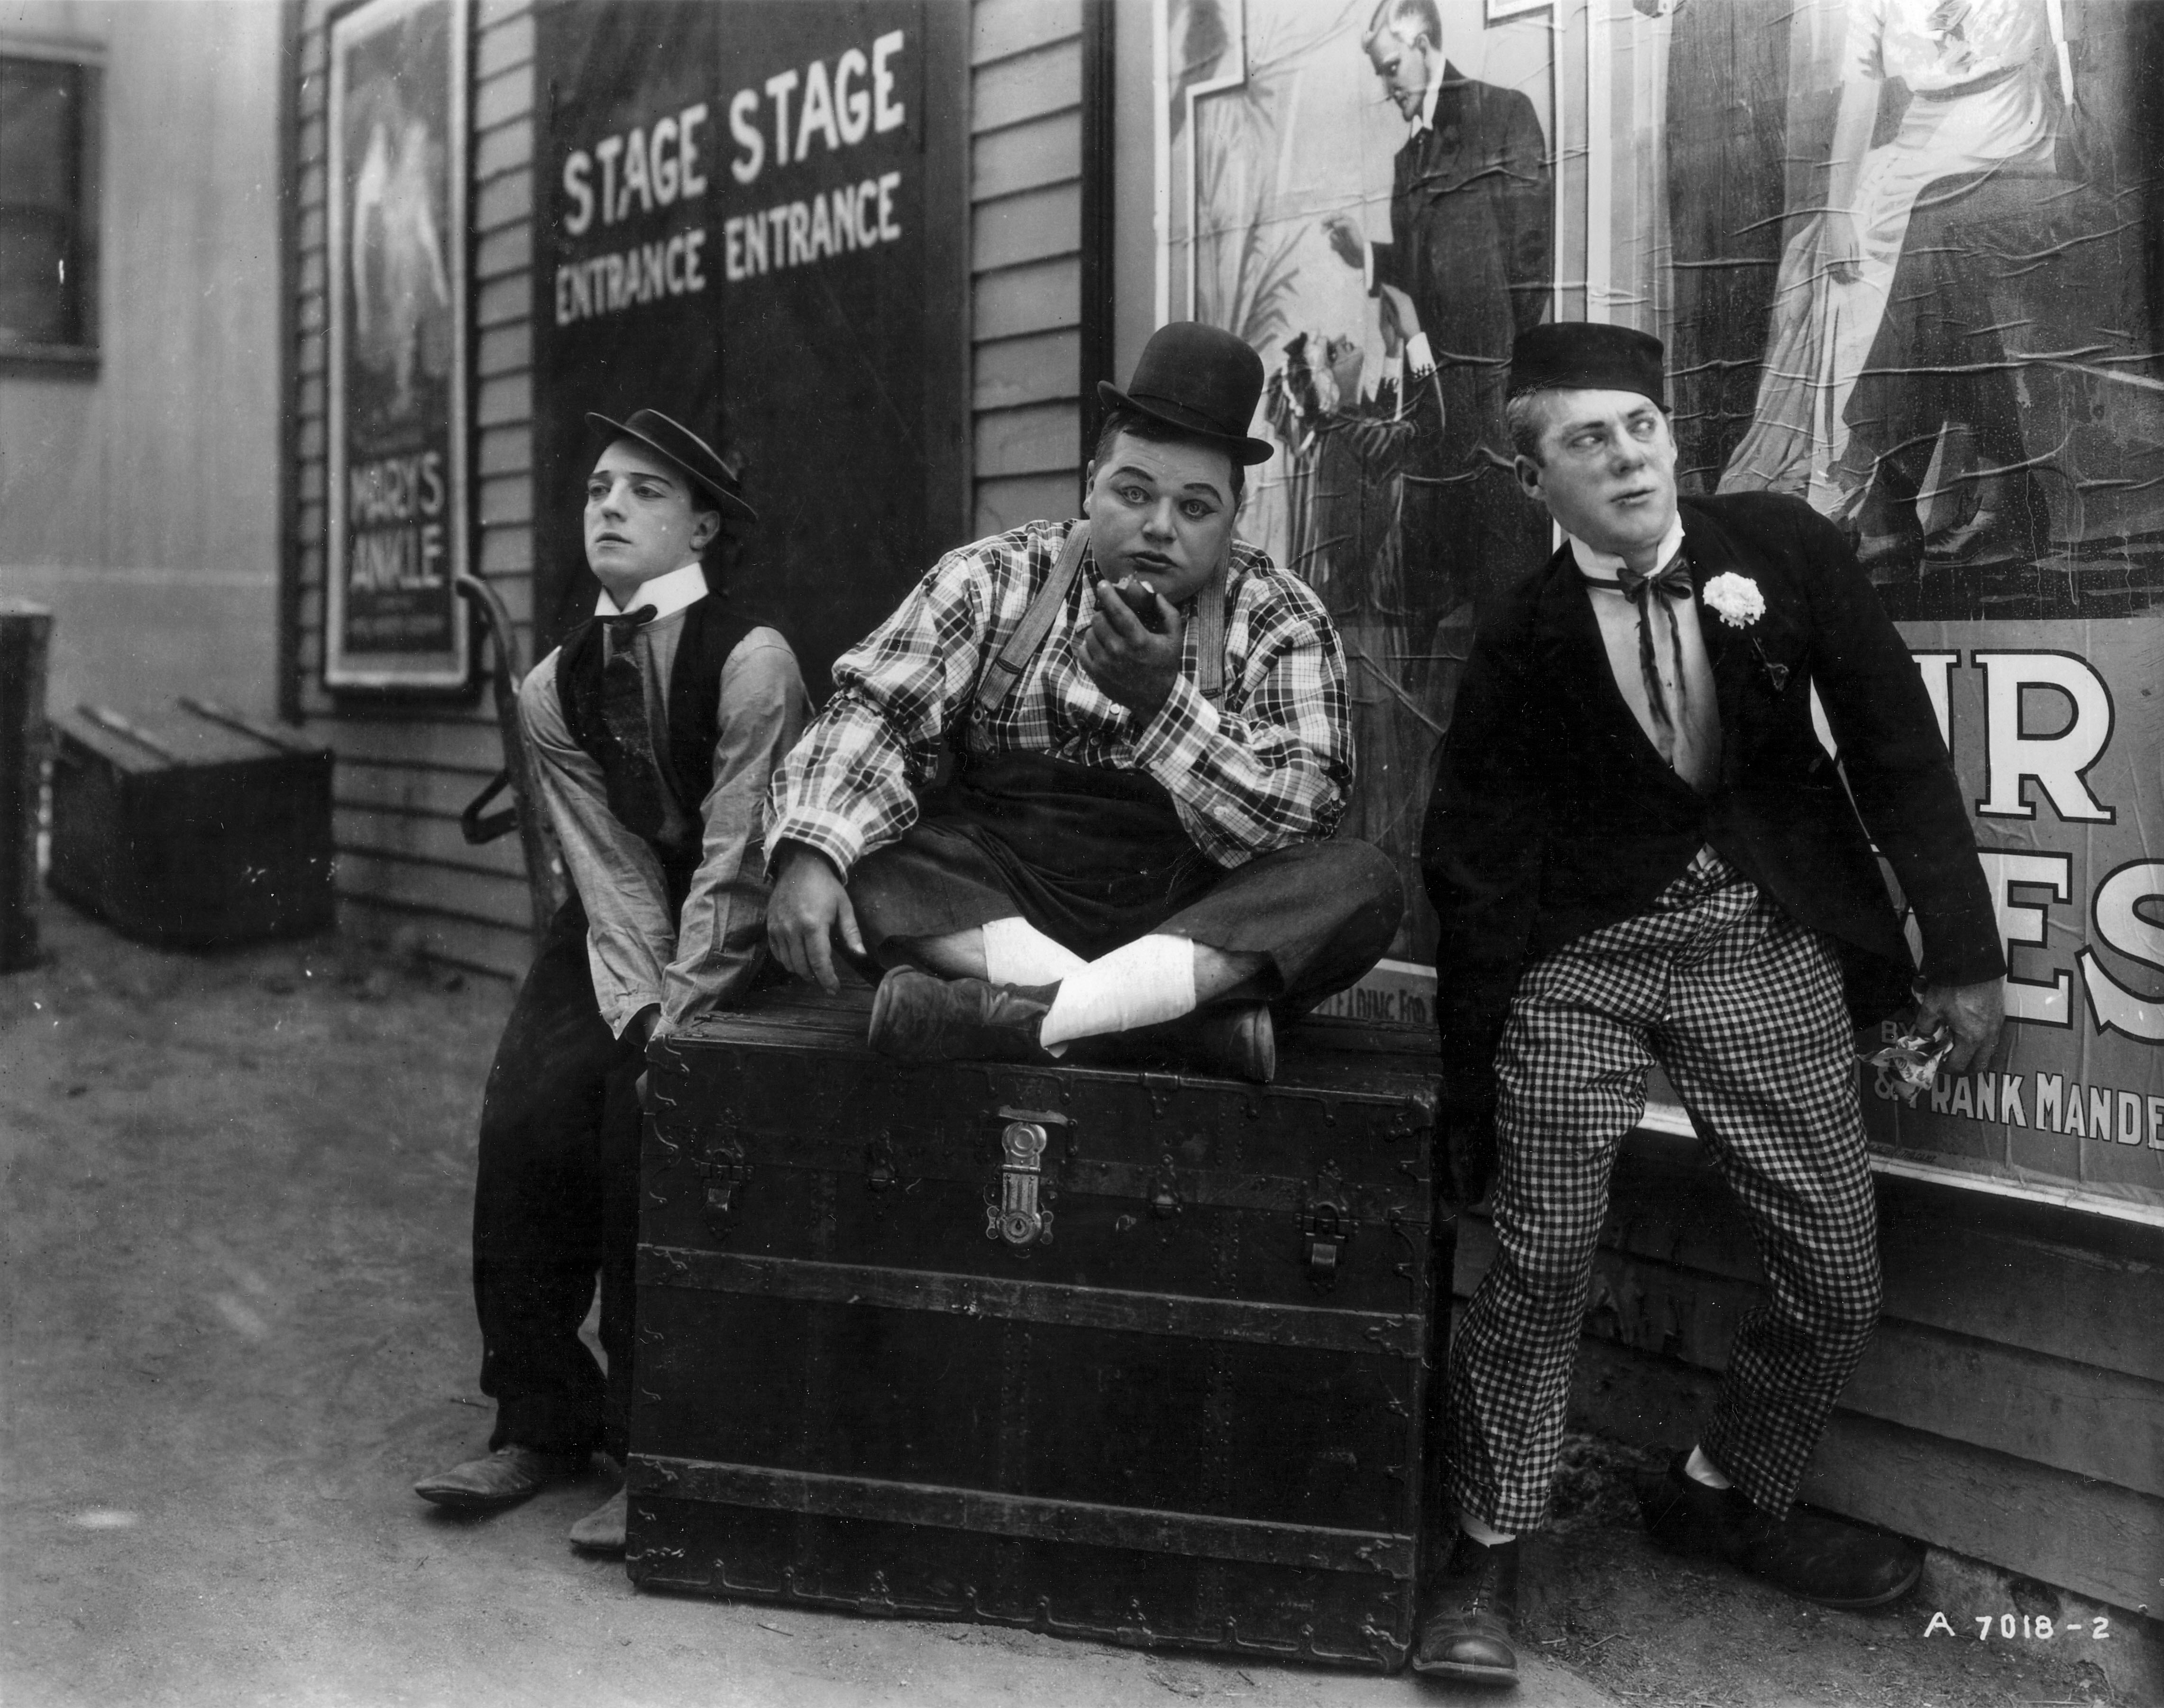 Photo of Buster Keaton, Fatty Arbuckle, and Al St. John, Photo Courtesy Orange County Archives, Licensed under CC BY 2.0